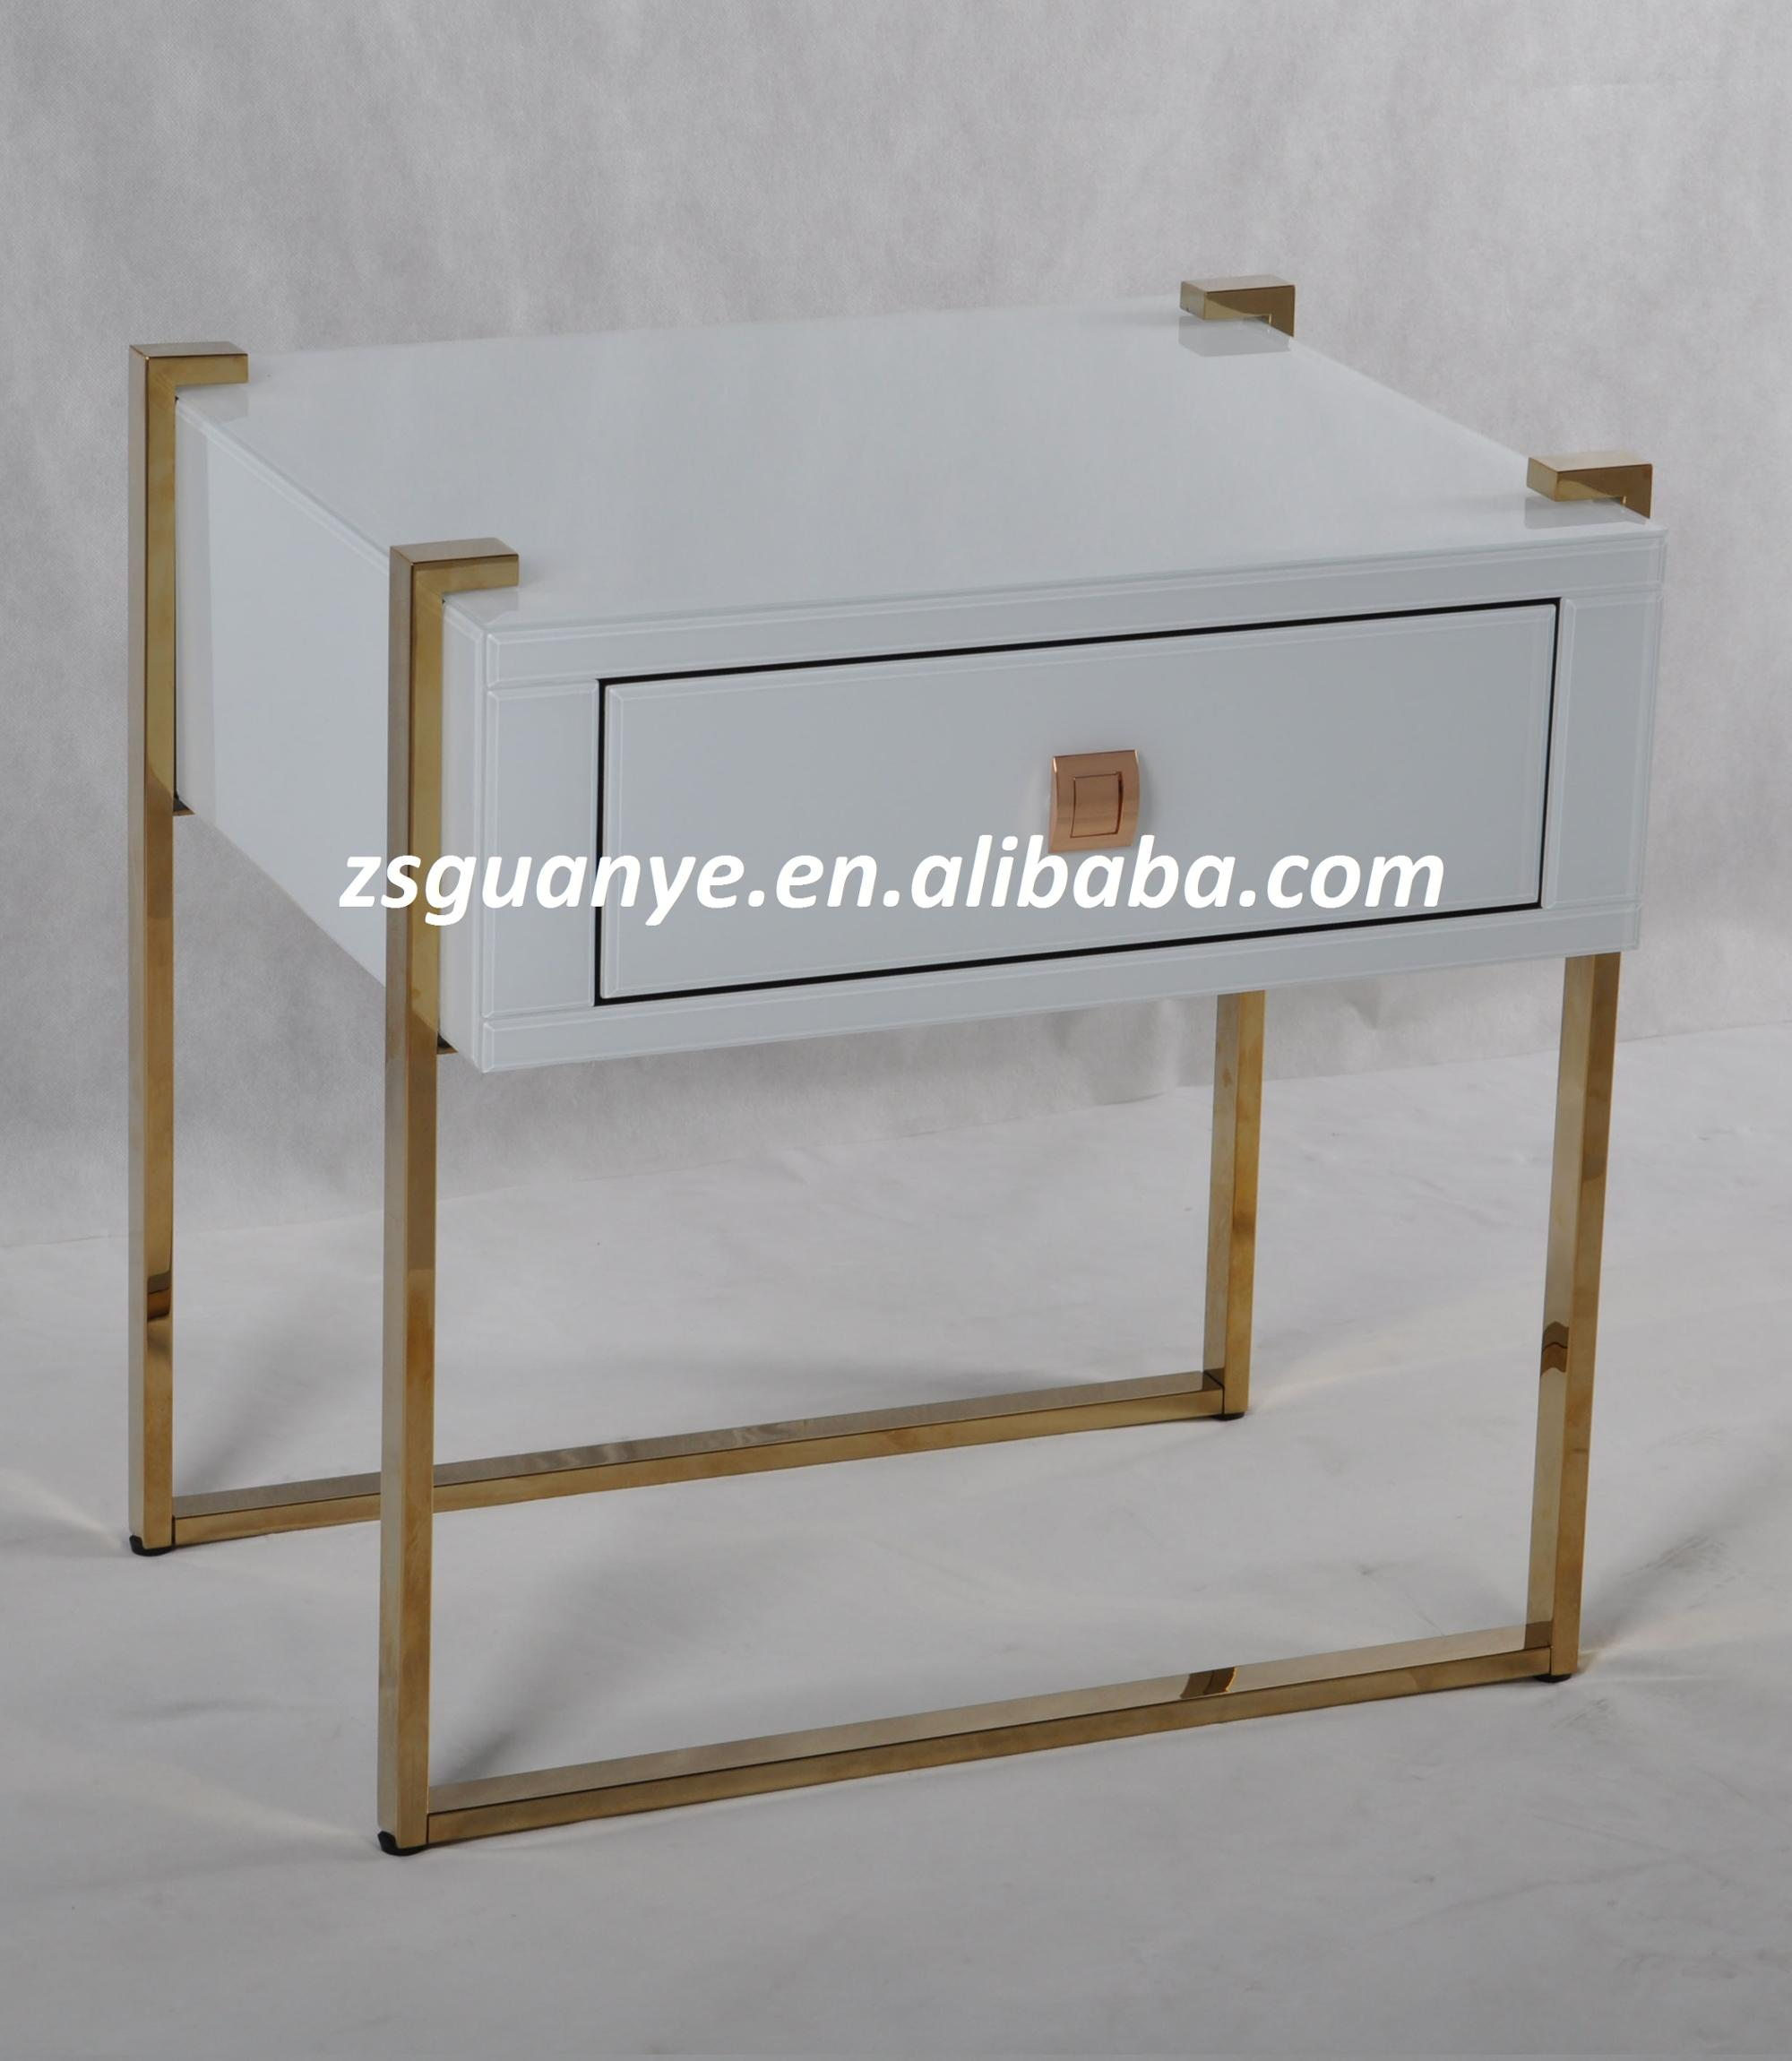 Metal Glass End Tables Gold Metal Leg White Glass Top Mirrored End Tables With Drawer Buy Bedroom Glass End Tables Mirror Nightstand Side Table Glass Top End Table Product